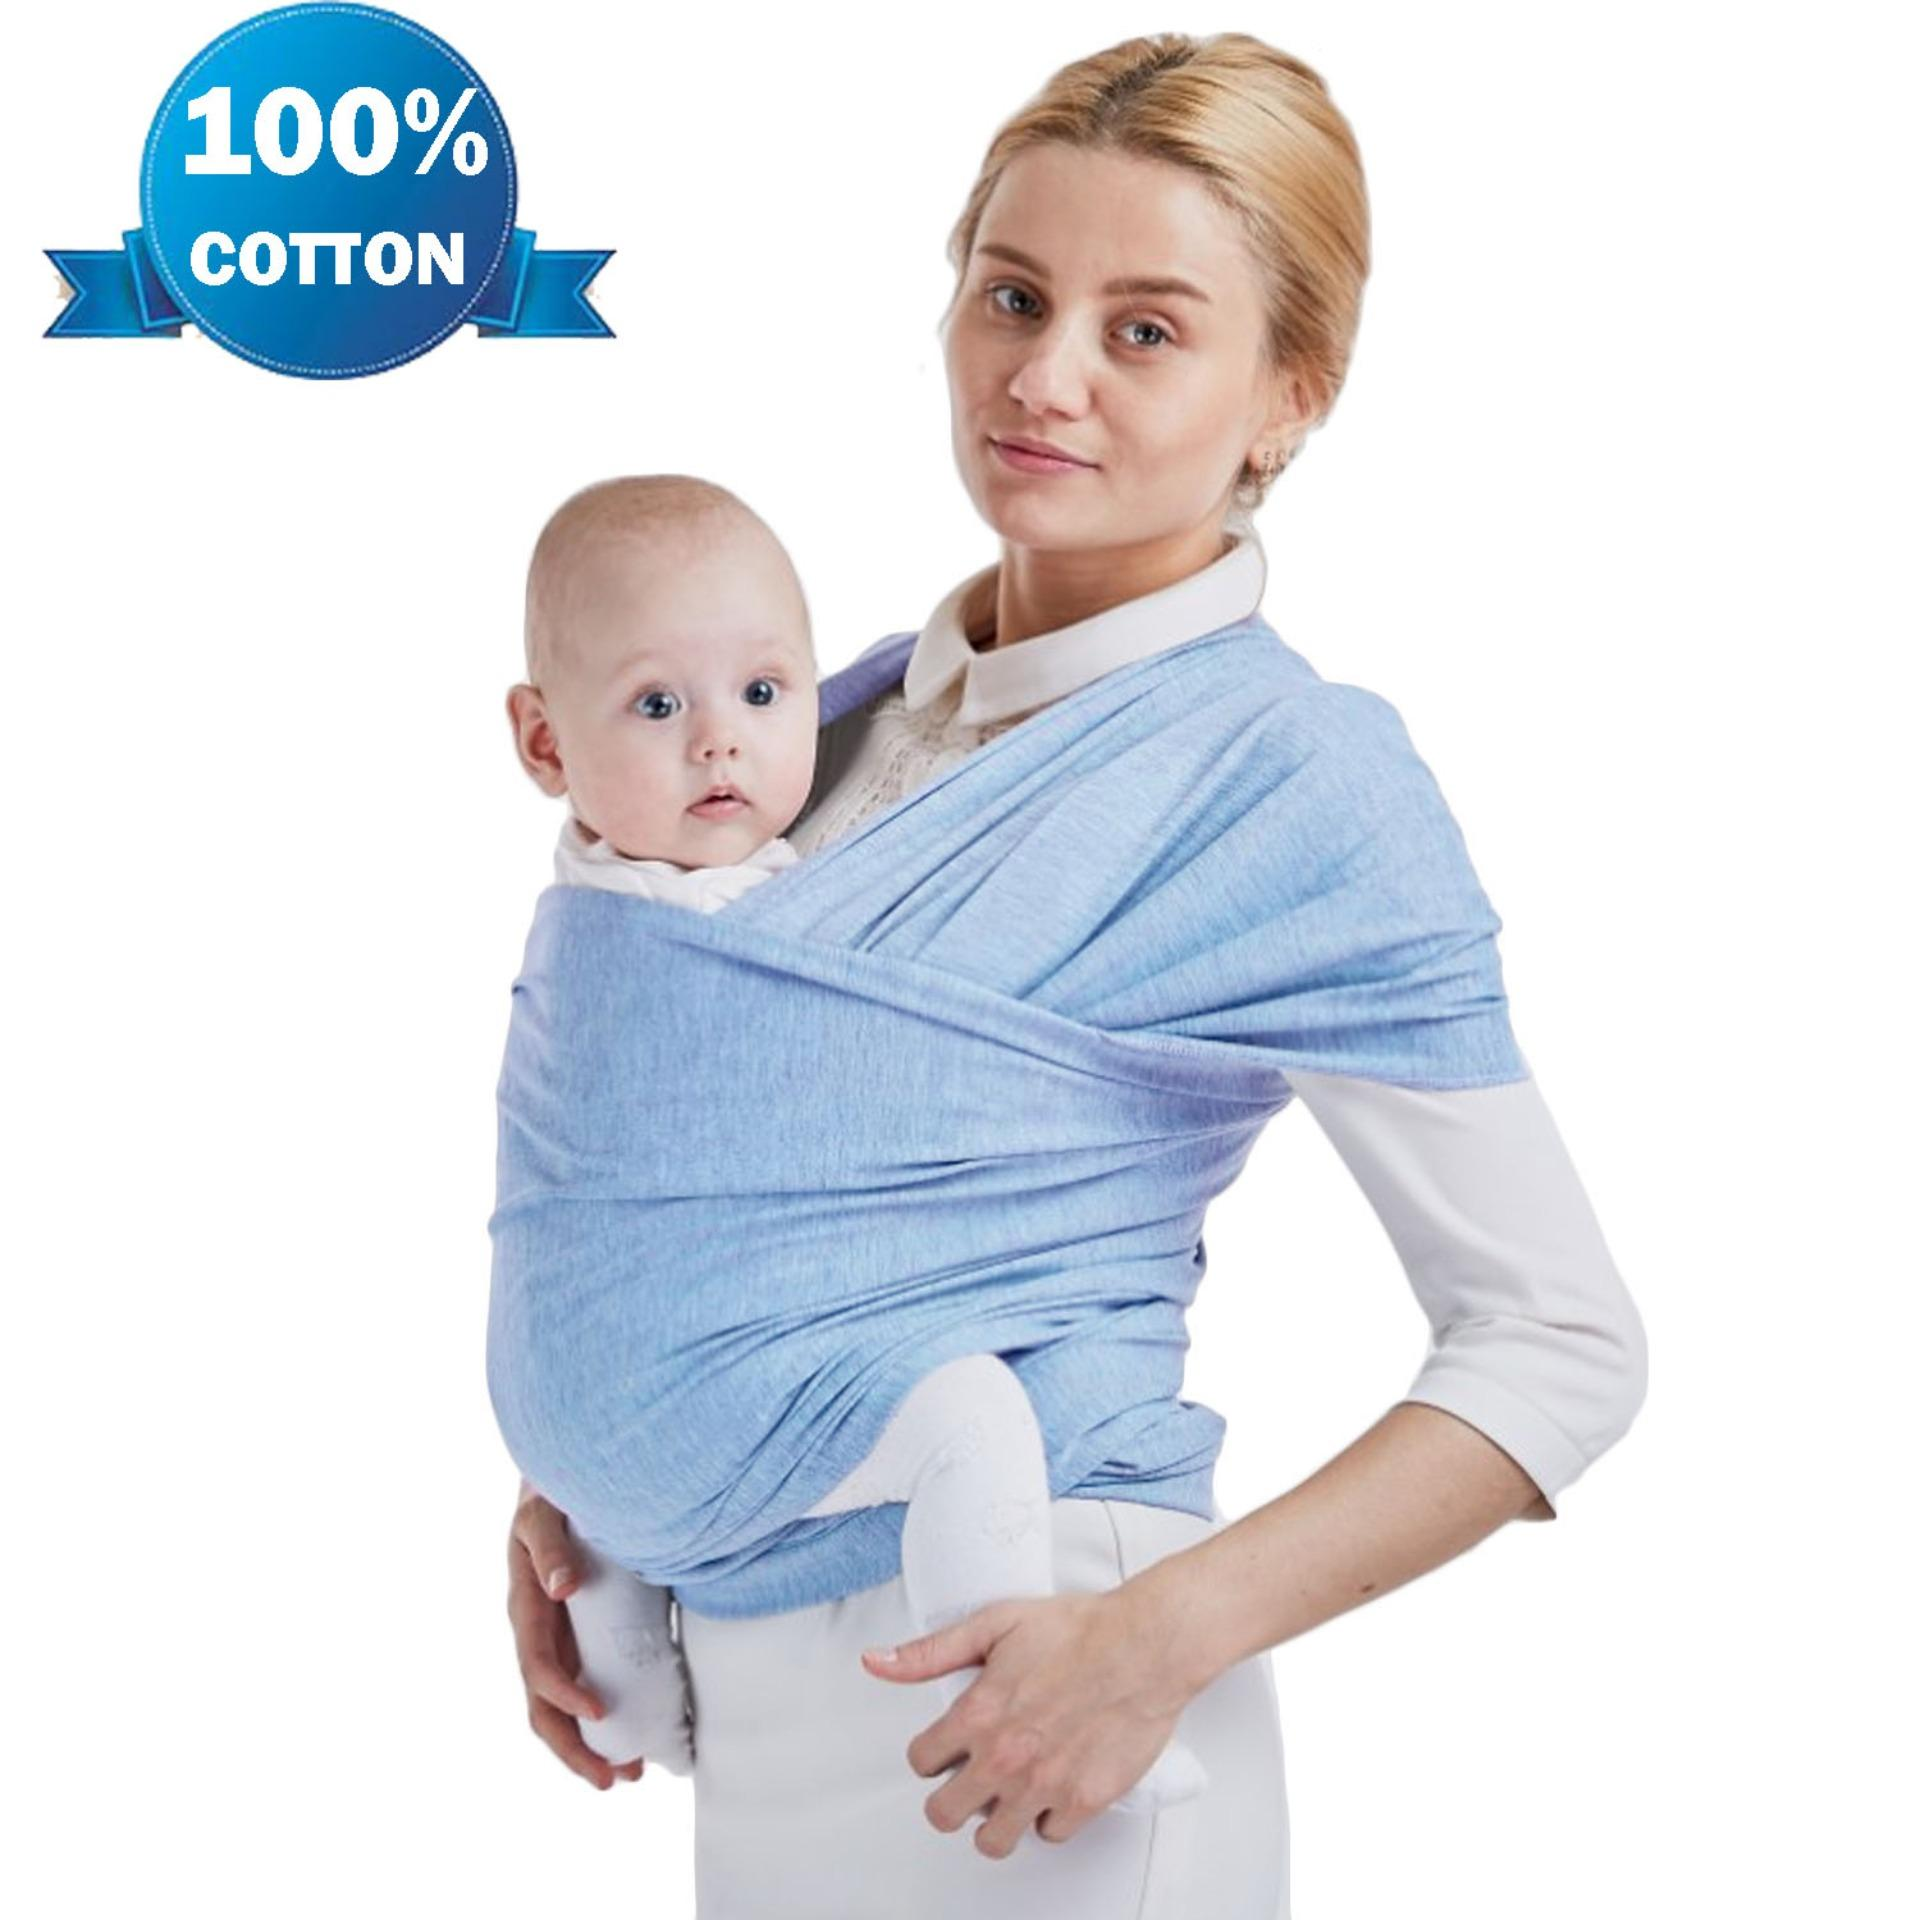 Soft Cotton Adjustable Baby Sling Wrap Cover Carrier For Infants Up To 20kg By Duha.